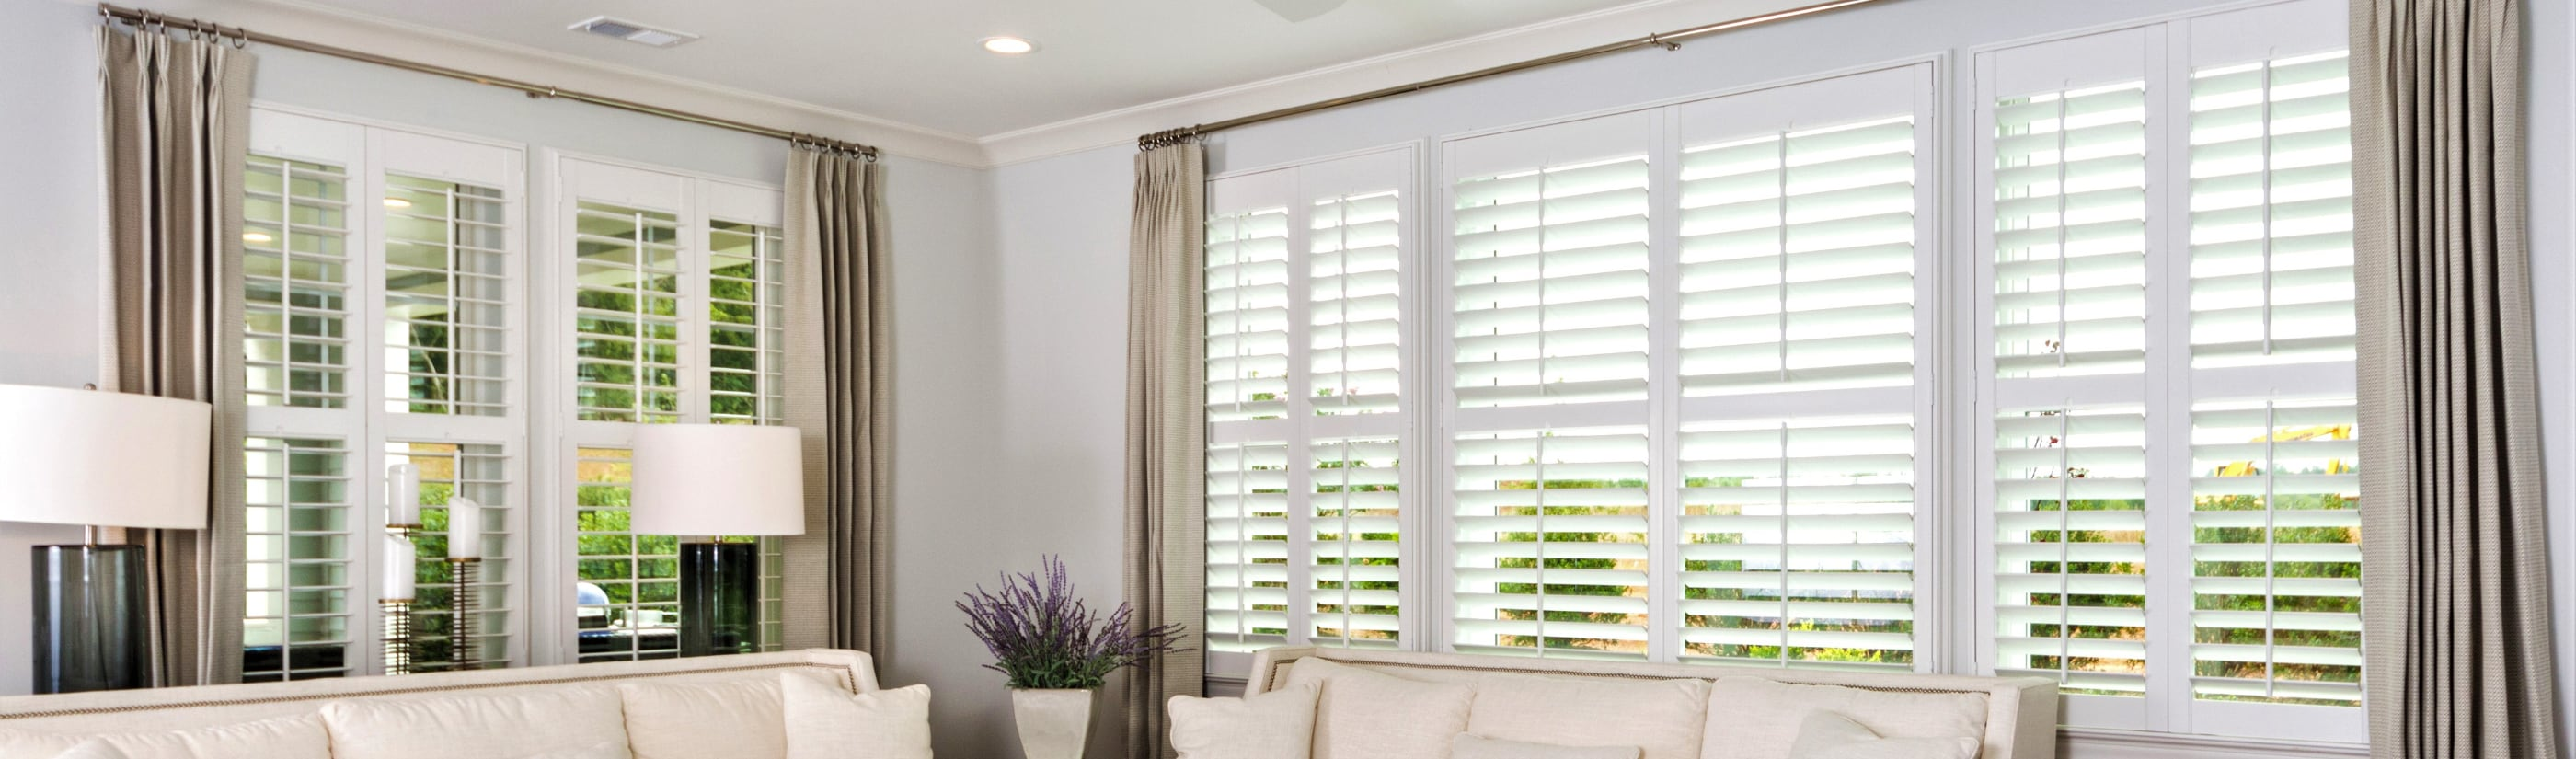 Polywood Shutters Paints In Minneapolis